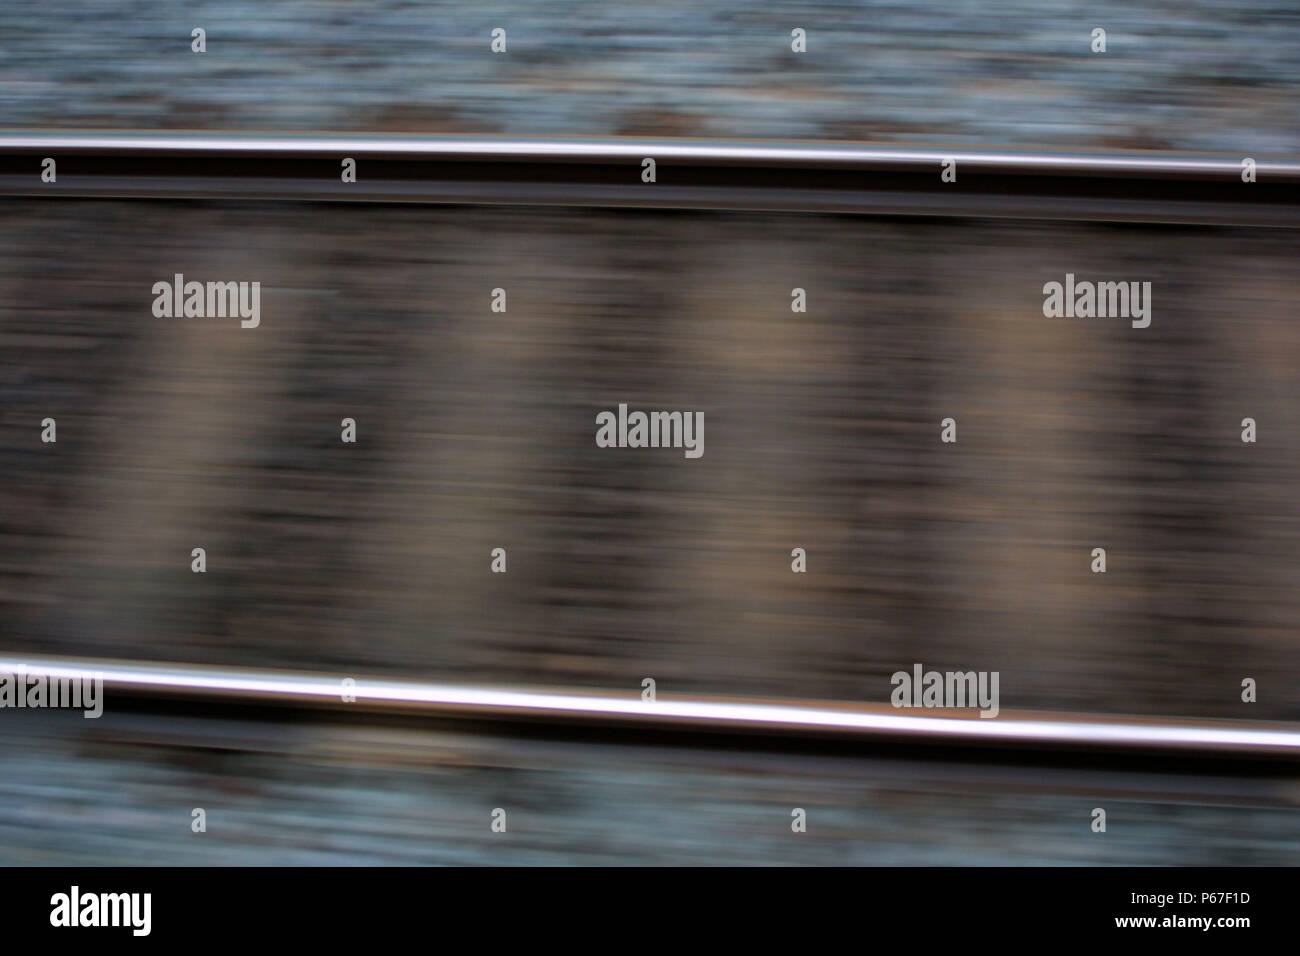 Blurred UK track. 2003. - Stock Image